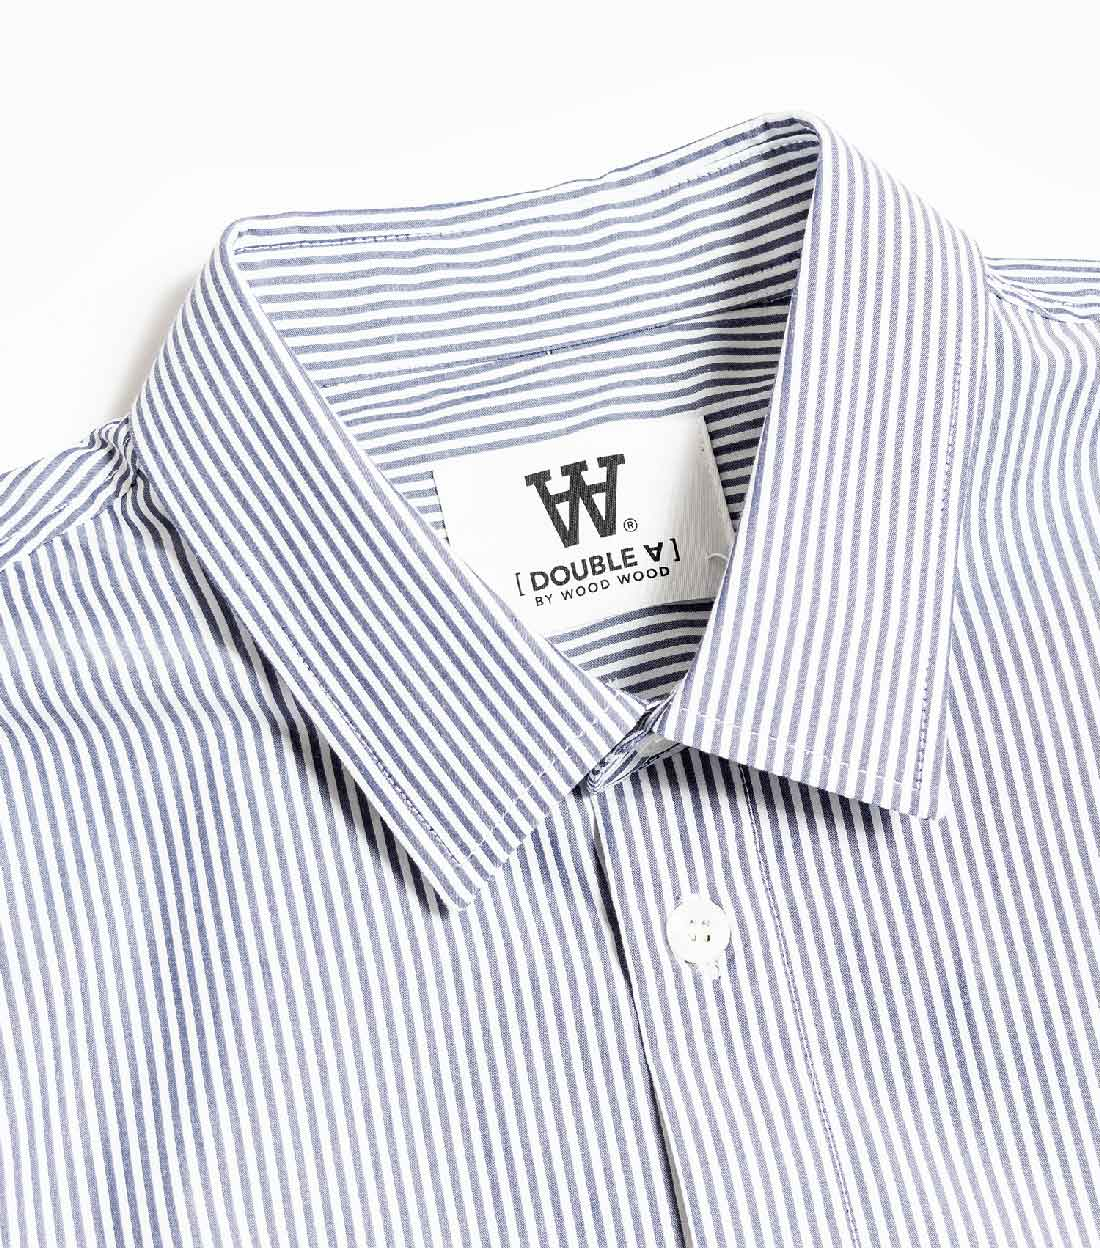 Wood Wood Double A Kay Shirt - White/Navy Stripe